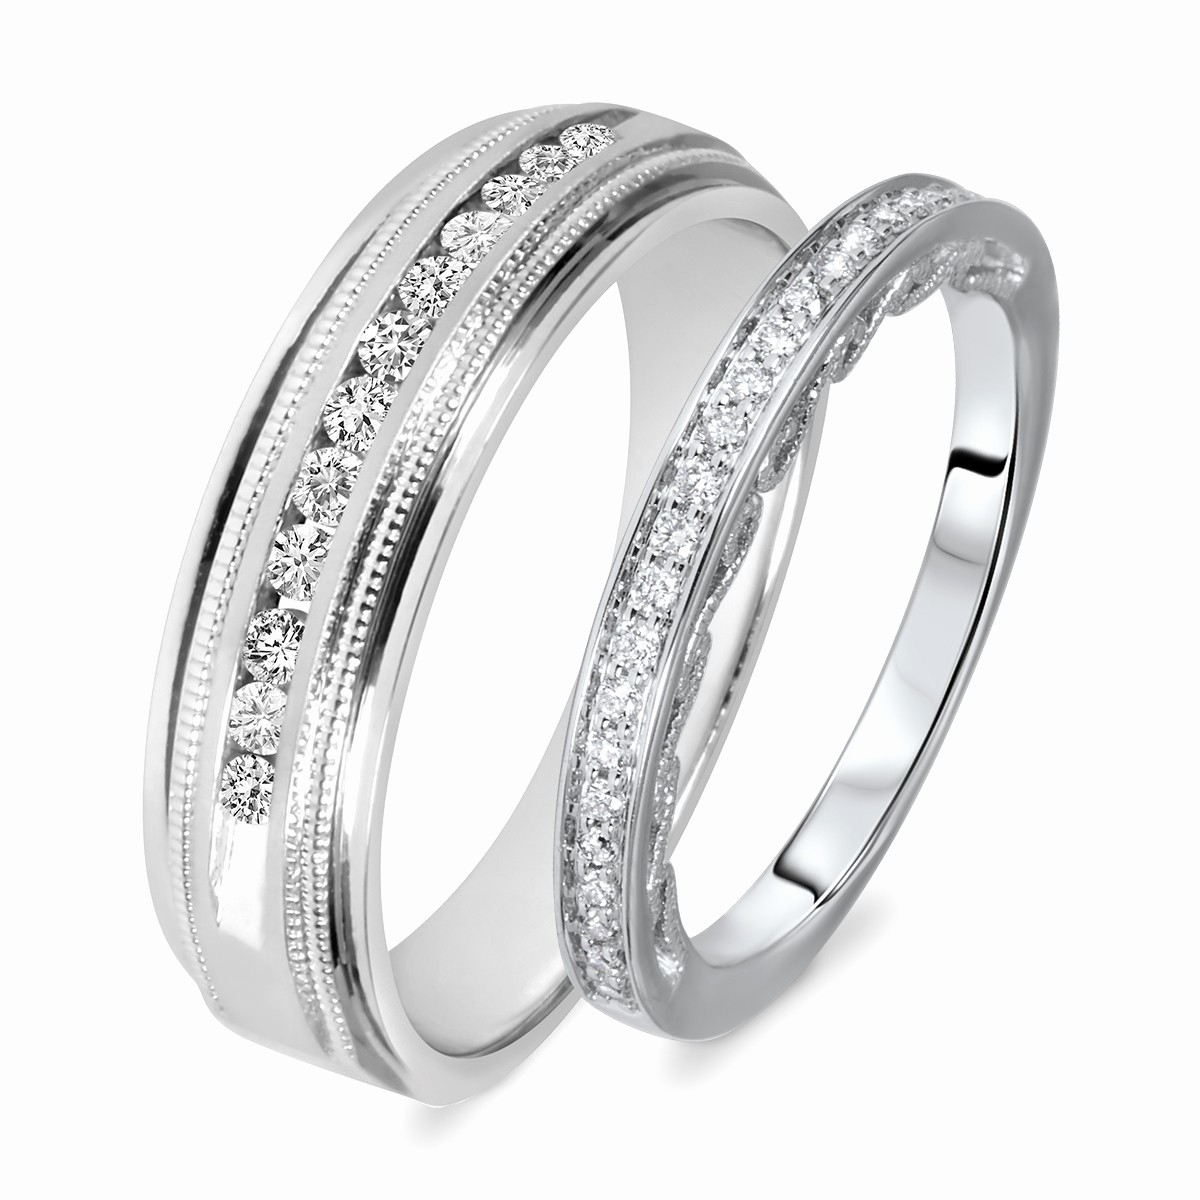 Wedding Bands Sets His And Her Matching Elegant Wedding Bands Sets Inside Newest His And Her Wedding Bands Sets (Gallery 6 of 15)